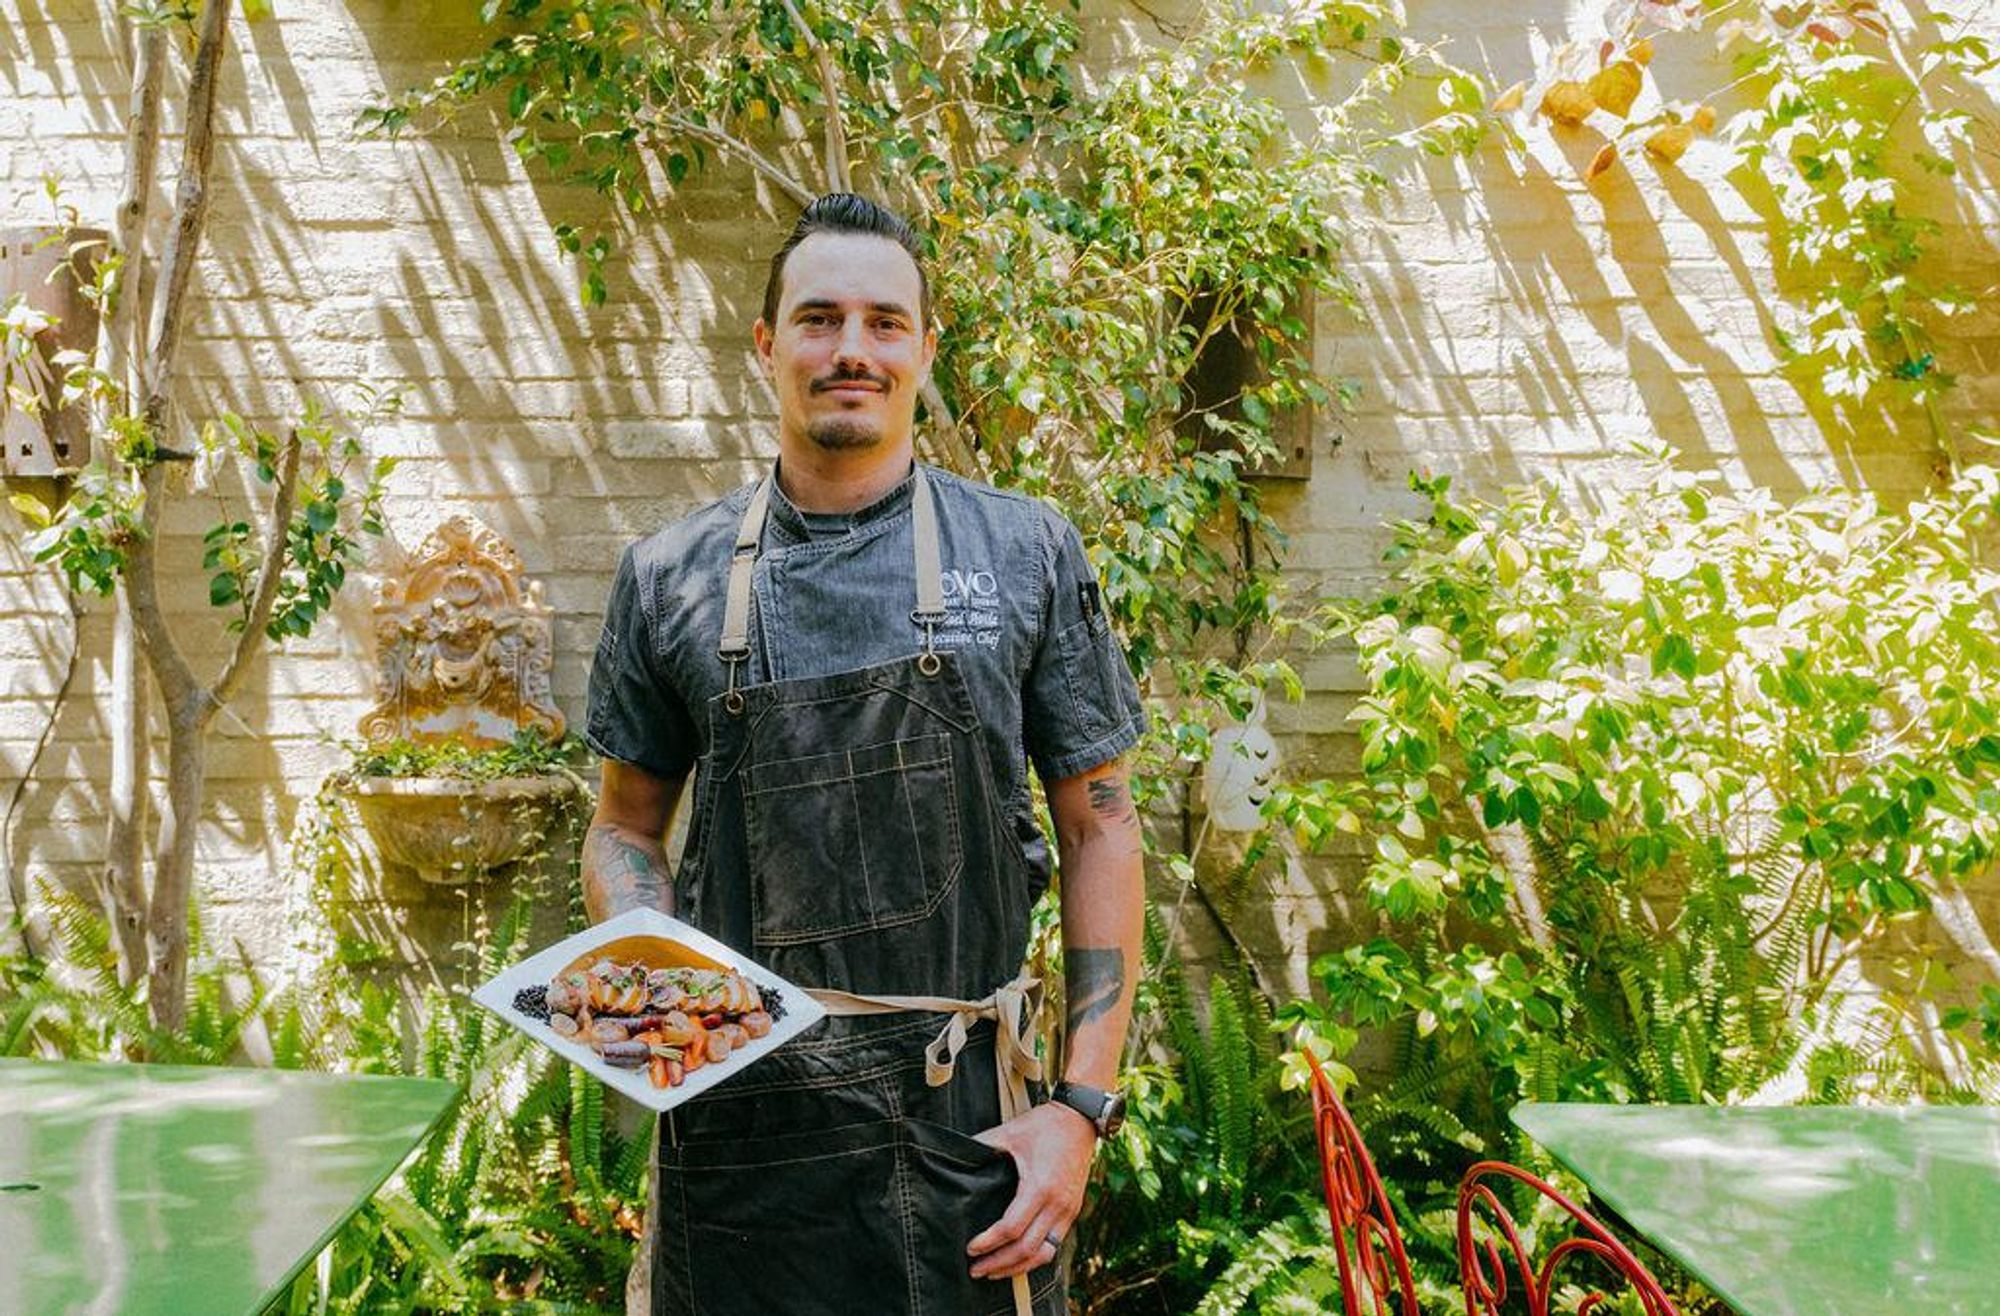 San Luis Obispo's Novo restaurant and its homegrown chef Michael Avila are local as they come